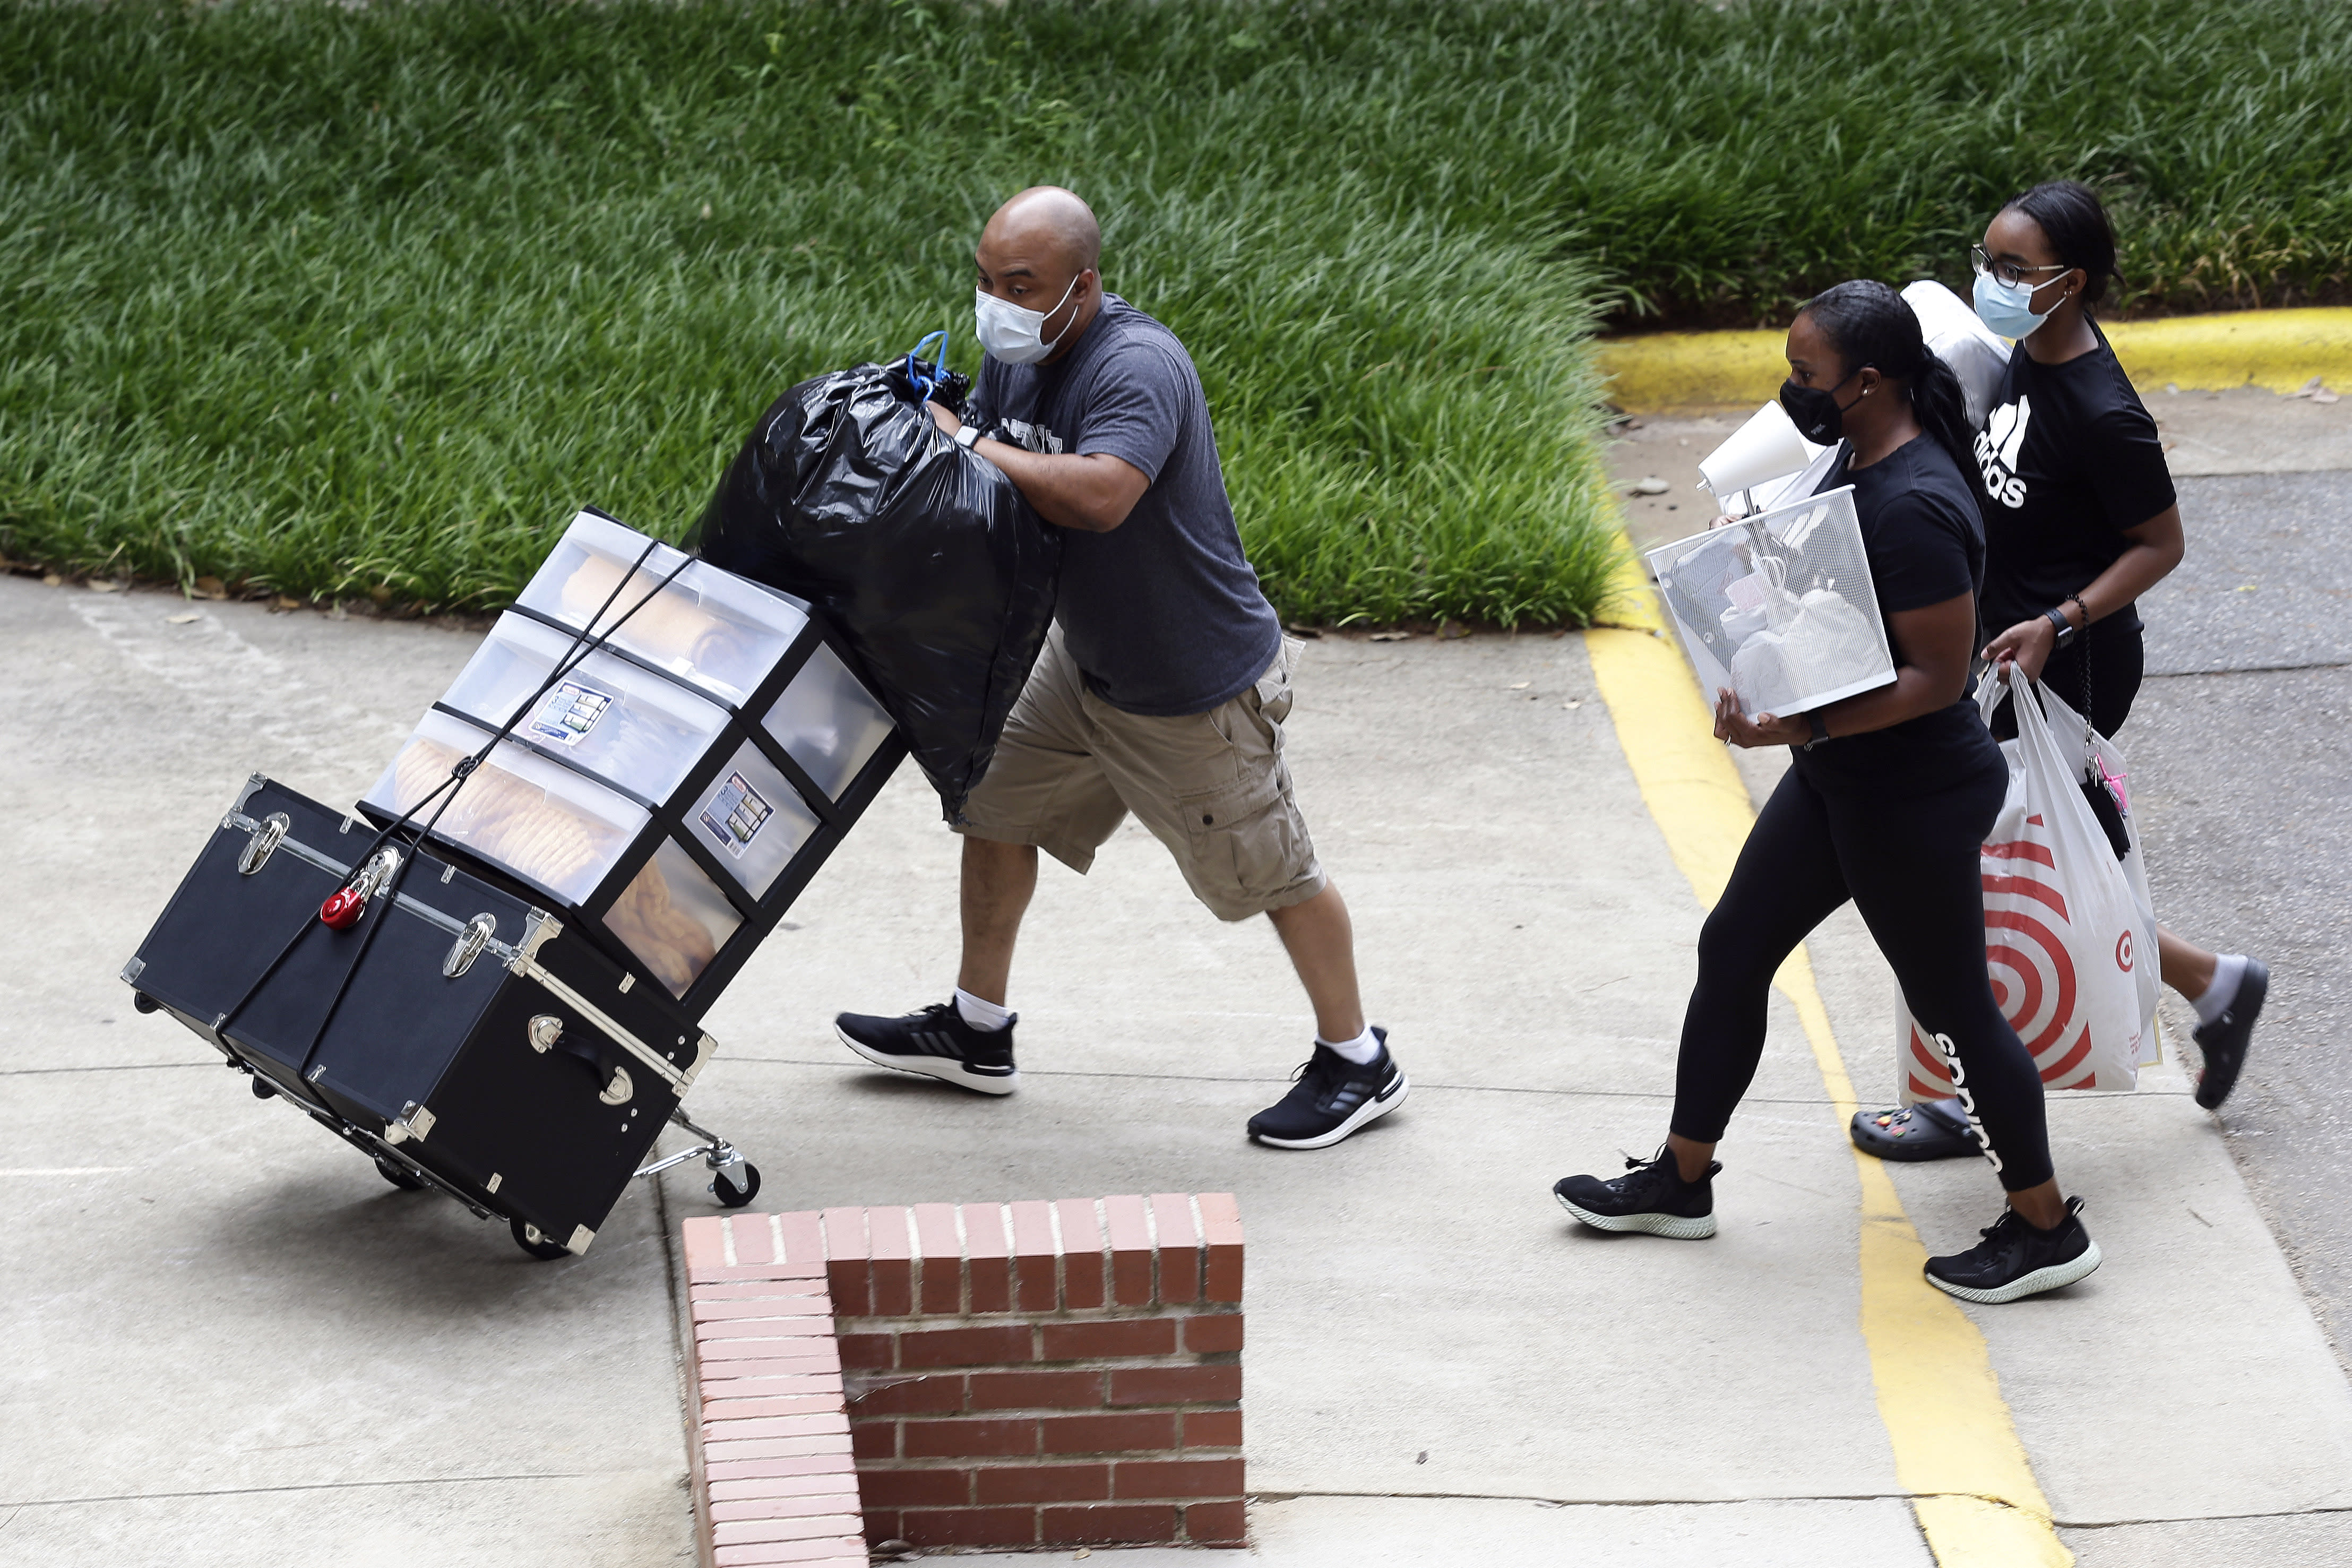 College students with the assistance of family begin moving in for the fall semester at N.C. State University in Raleigh, N.C., Friday, July 31, 2020. The first wave of college students returning to their dorms aren't finding the typical mobs of students and parents. At N.C. State, the return of students was staggered over 10 days and students were greeted Friday by socially distant volunteers donning masks and face shields. (AP Photo/Gerry Broome)